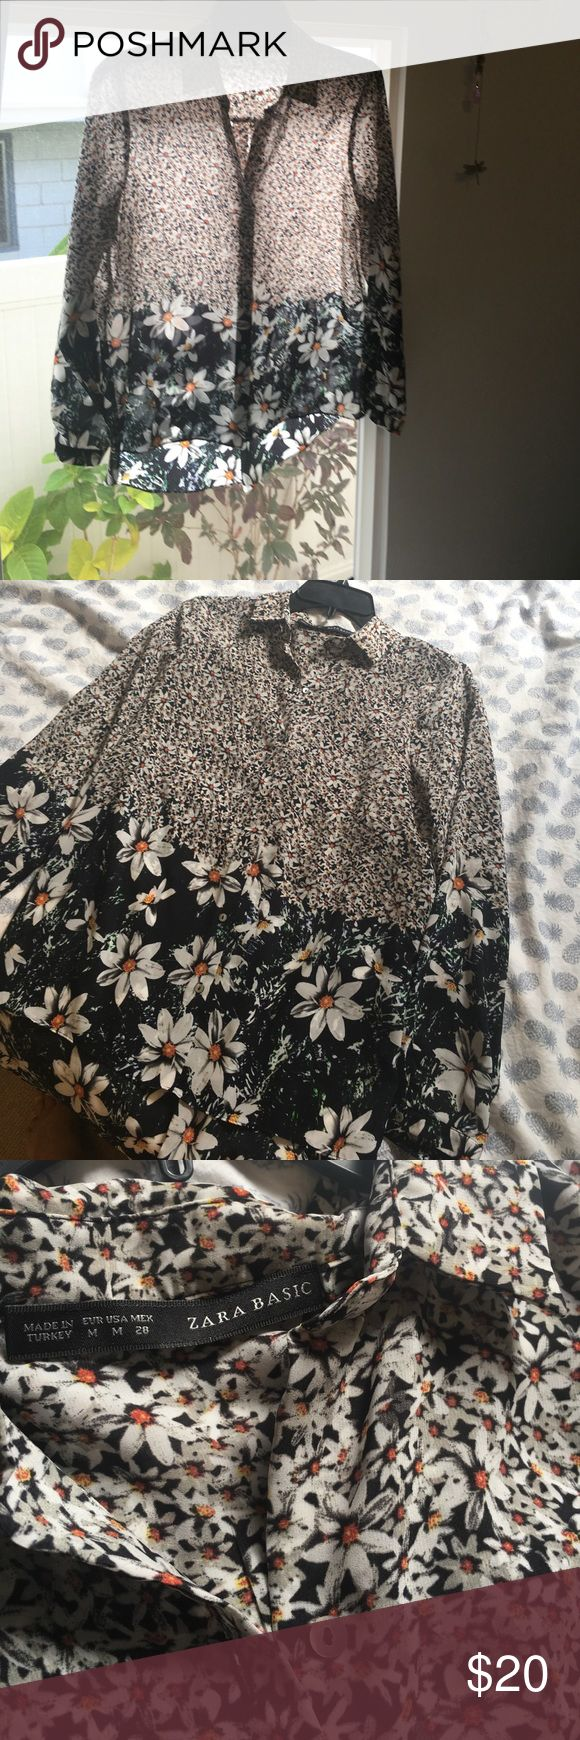 🌼Gorgeous Zara silk shirt 🌼 Beautiful daisy print fabric, perfect office or casual date outfit,, tags cut but otherwise spotless condition 🤗 Zara Tops Button Down Shirts